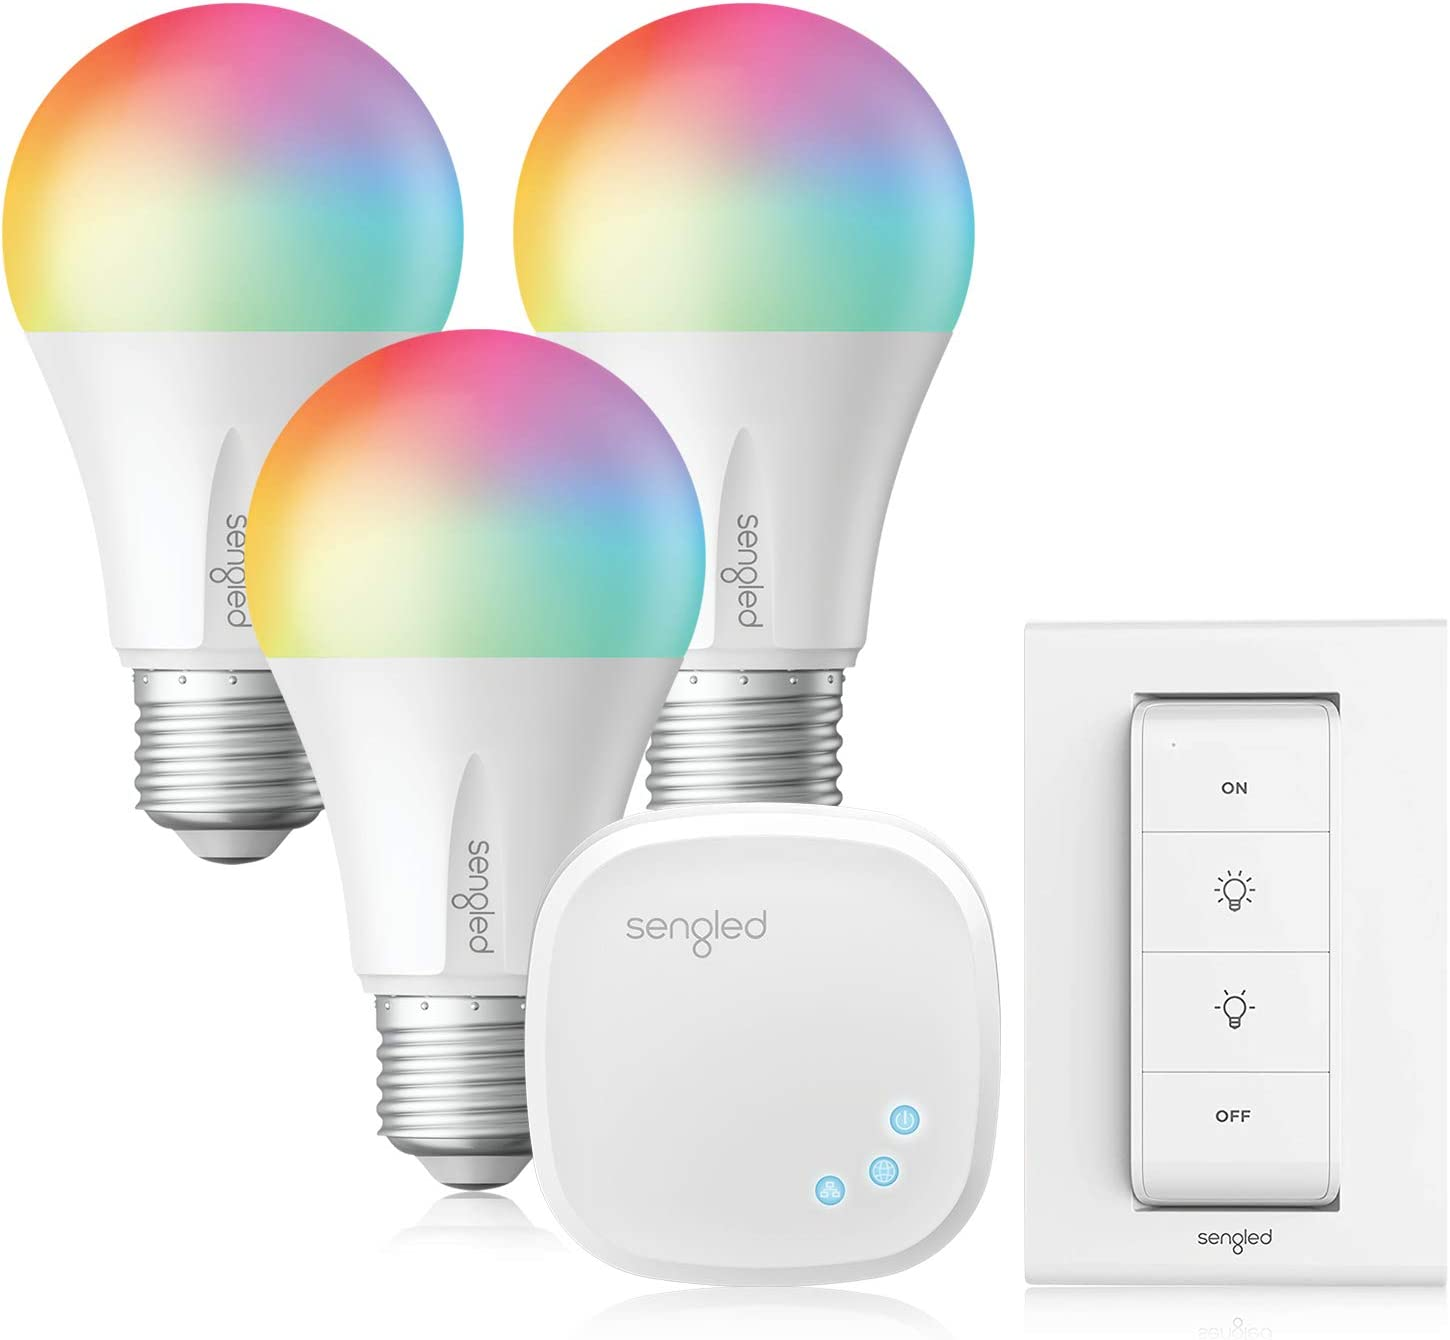 Sengled Smart Light Bulbs, Alexa Light Bulbs RGB Color Changing, Smart Bulb That Works with Alexa, Google Home, 3 Pack Starter Kit with Smart Switch, A19 E26 Dimmable LED 60W Equivalent, 800LM